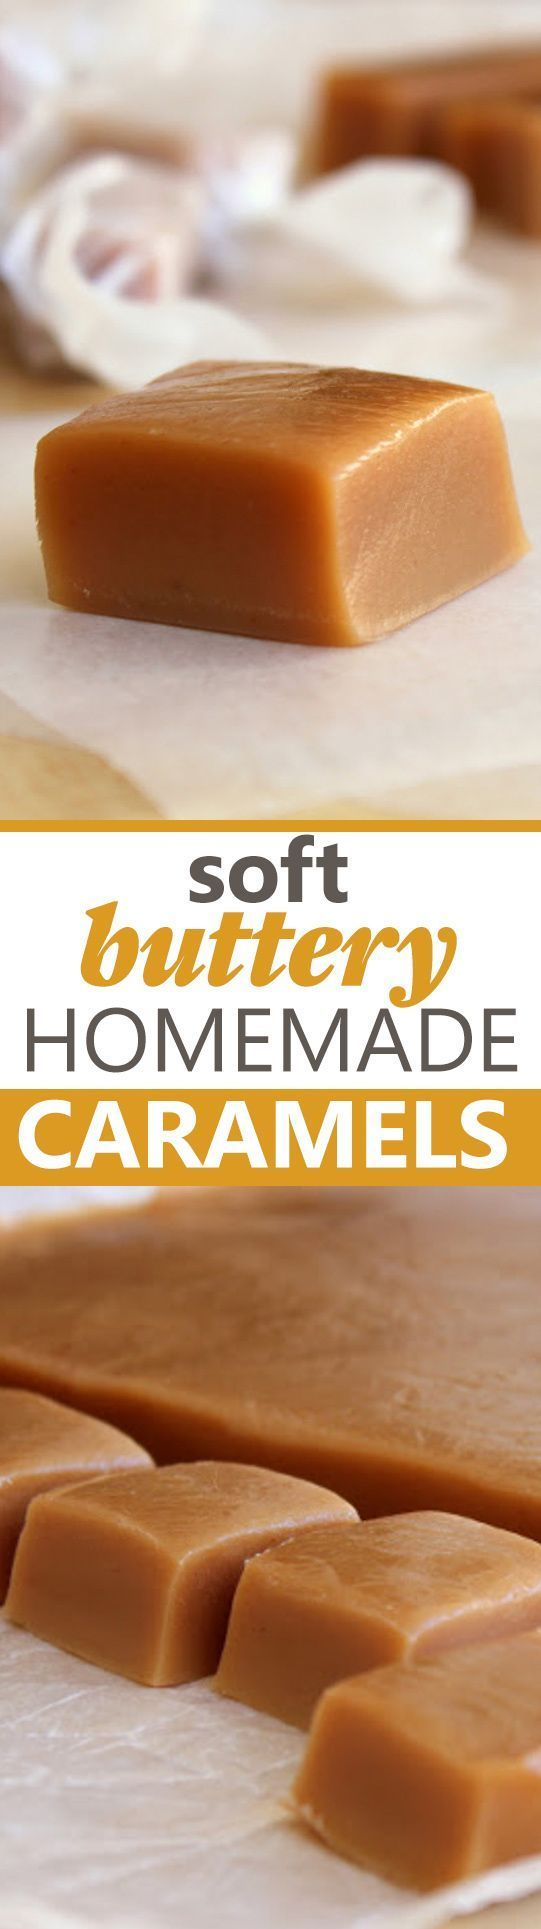 Soft, Buttery Homemade Caramels